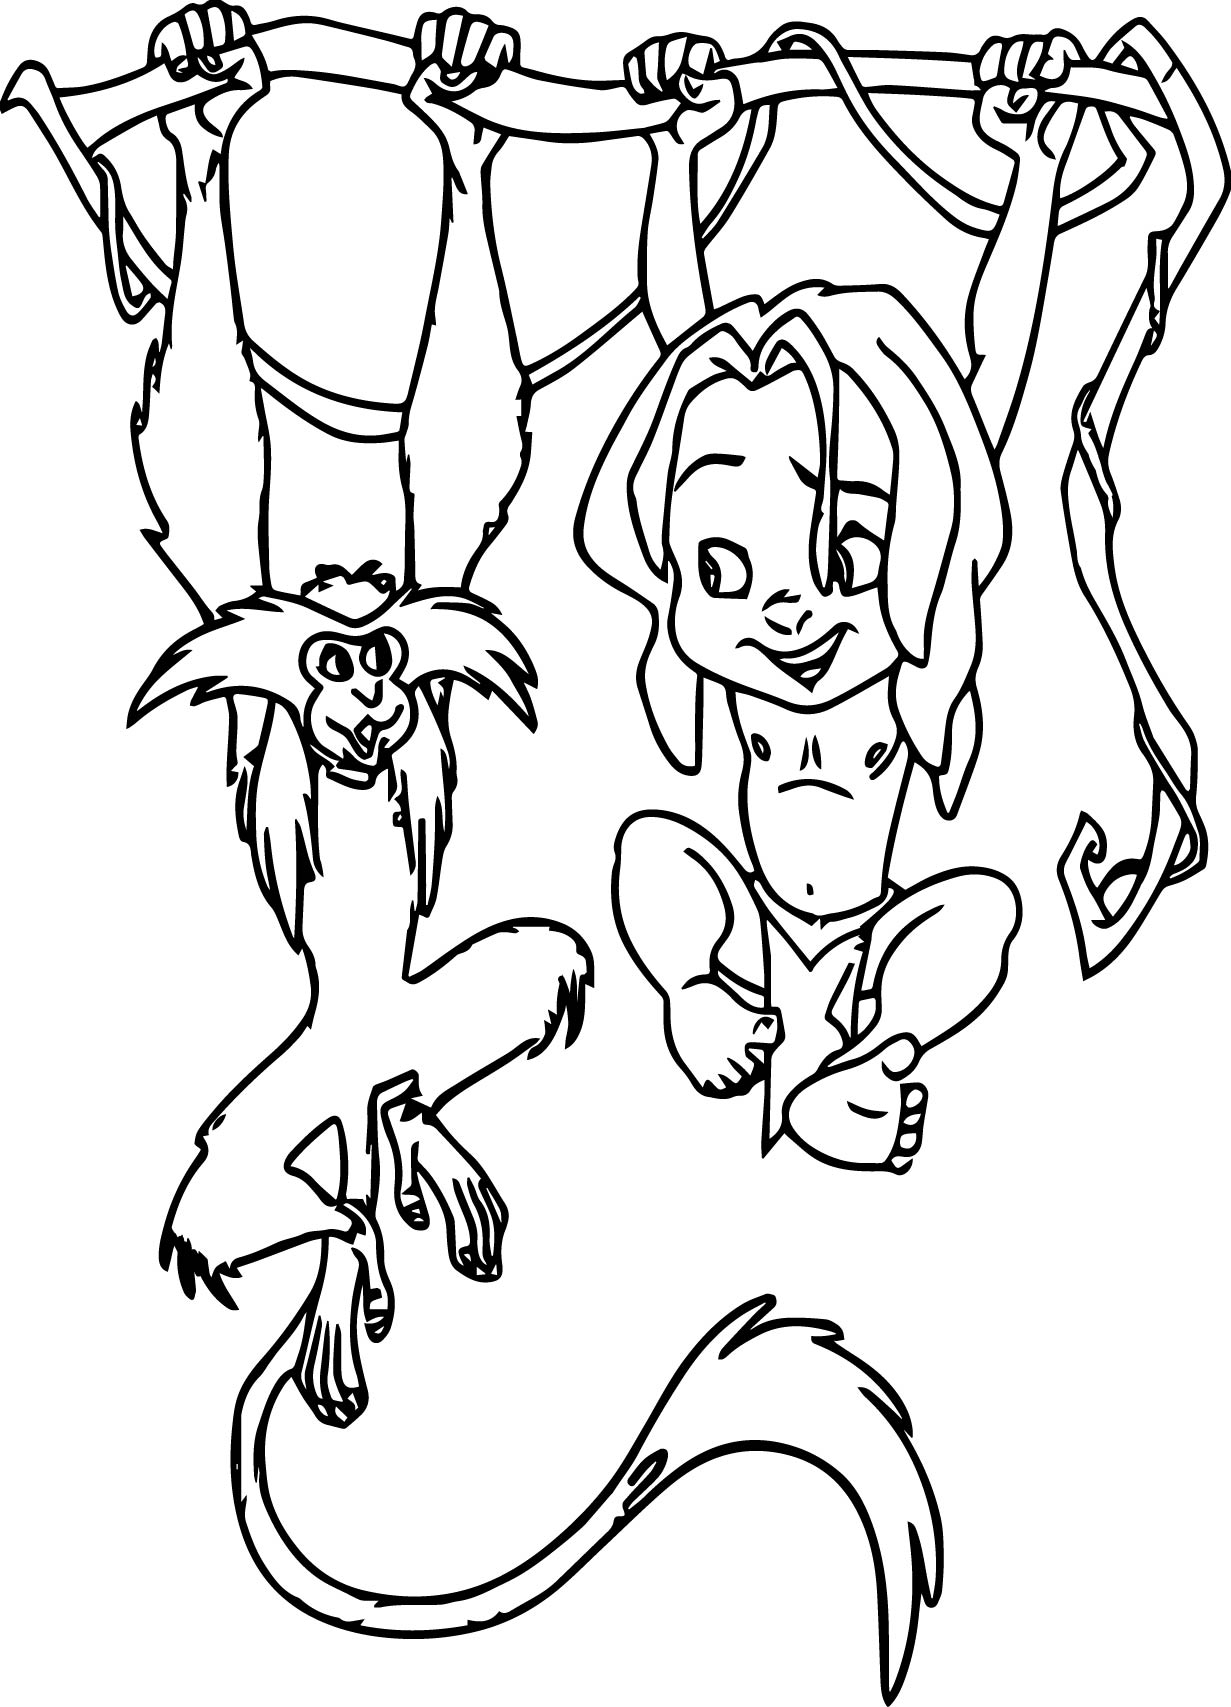 young tarzan and monkey on tree coloring pages | wecoloringpage - Coloring Pages Monkeys Trees